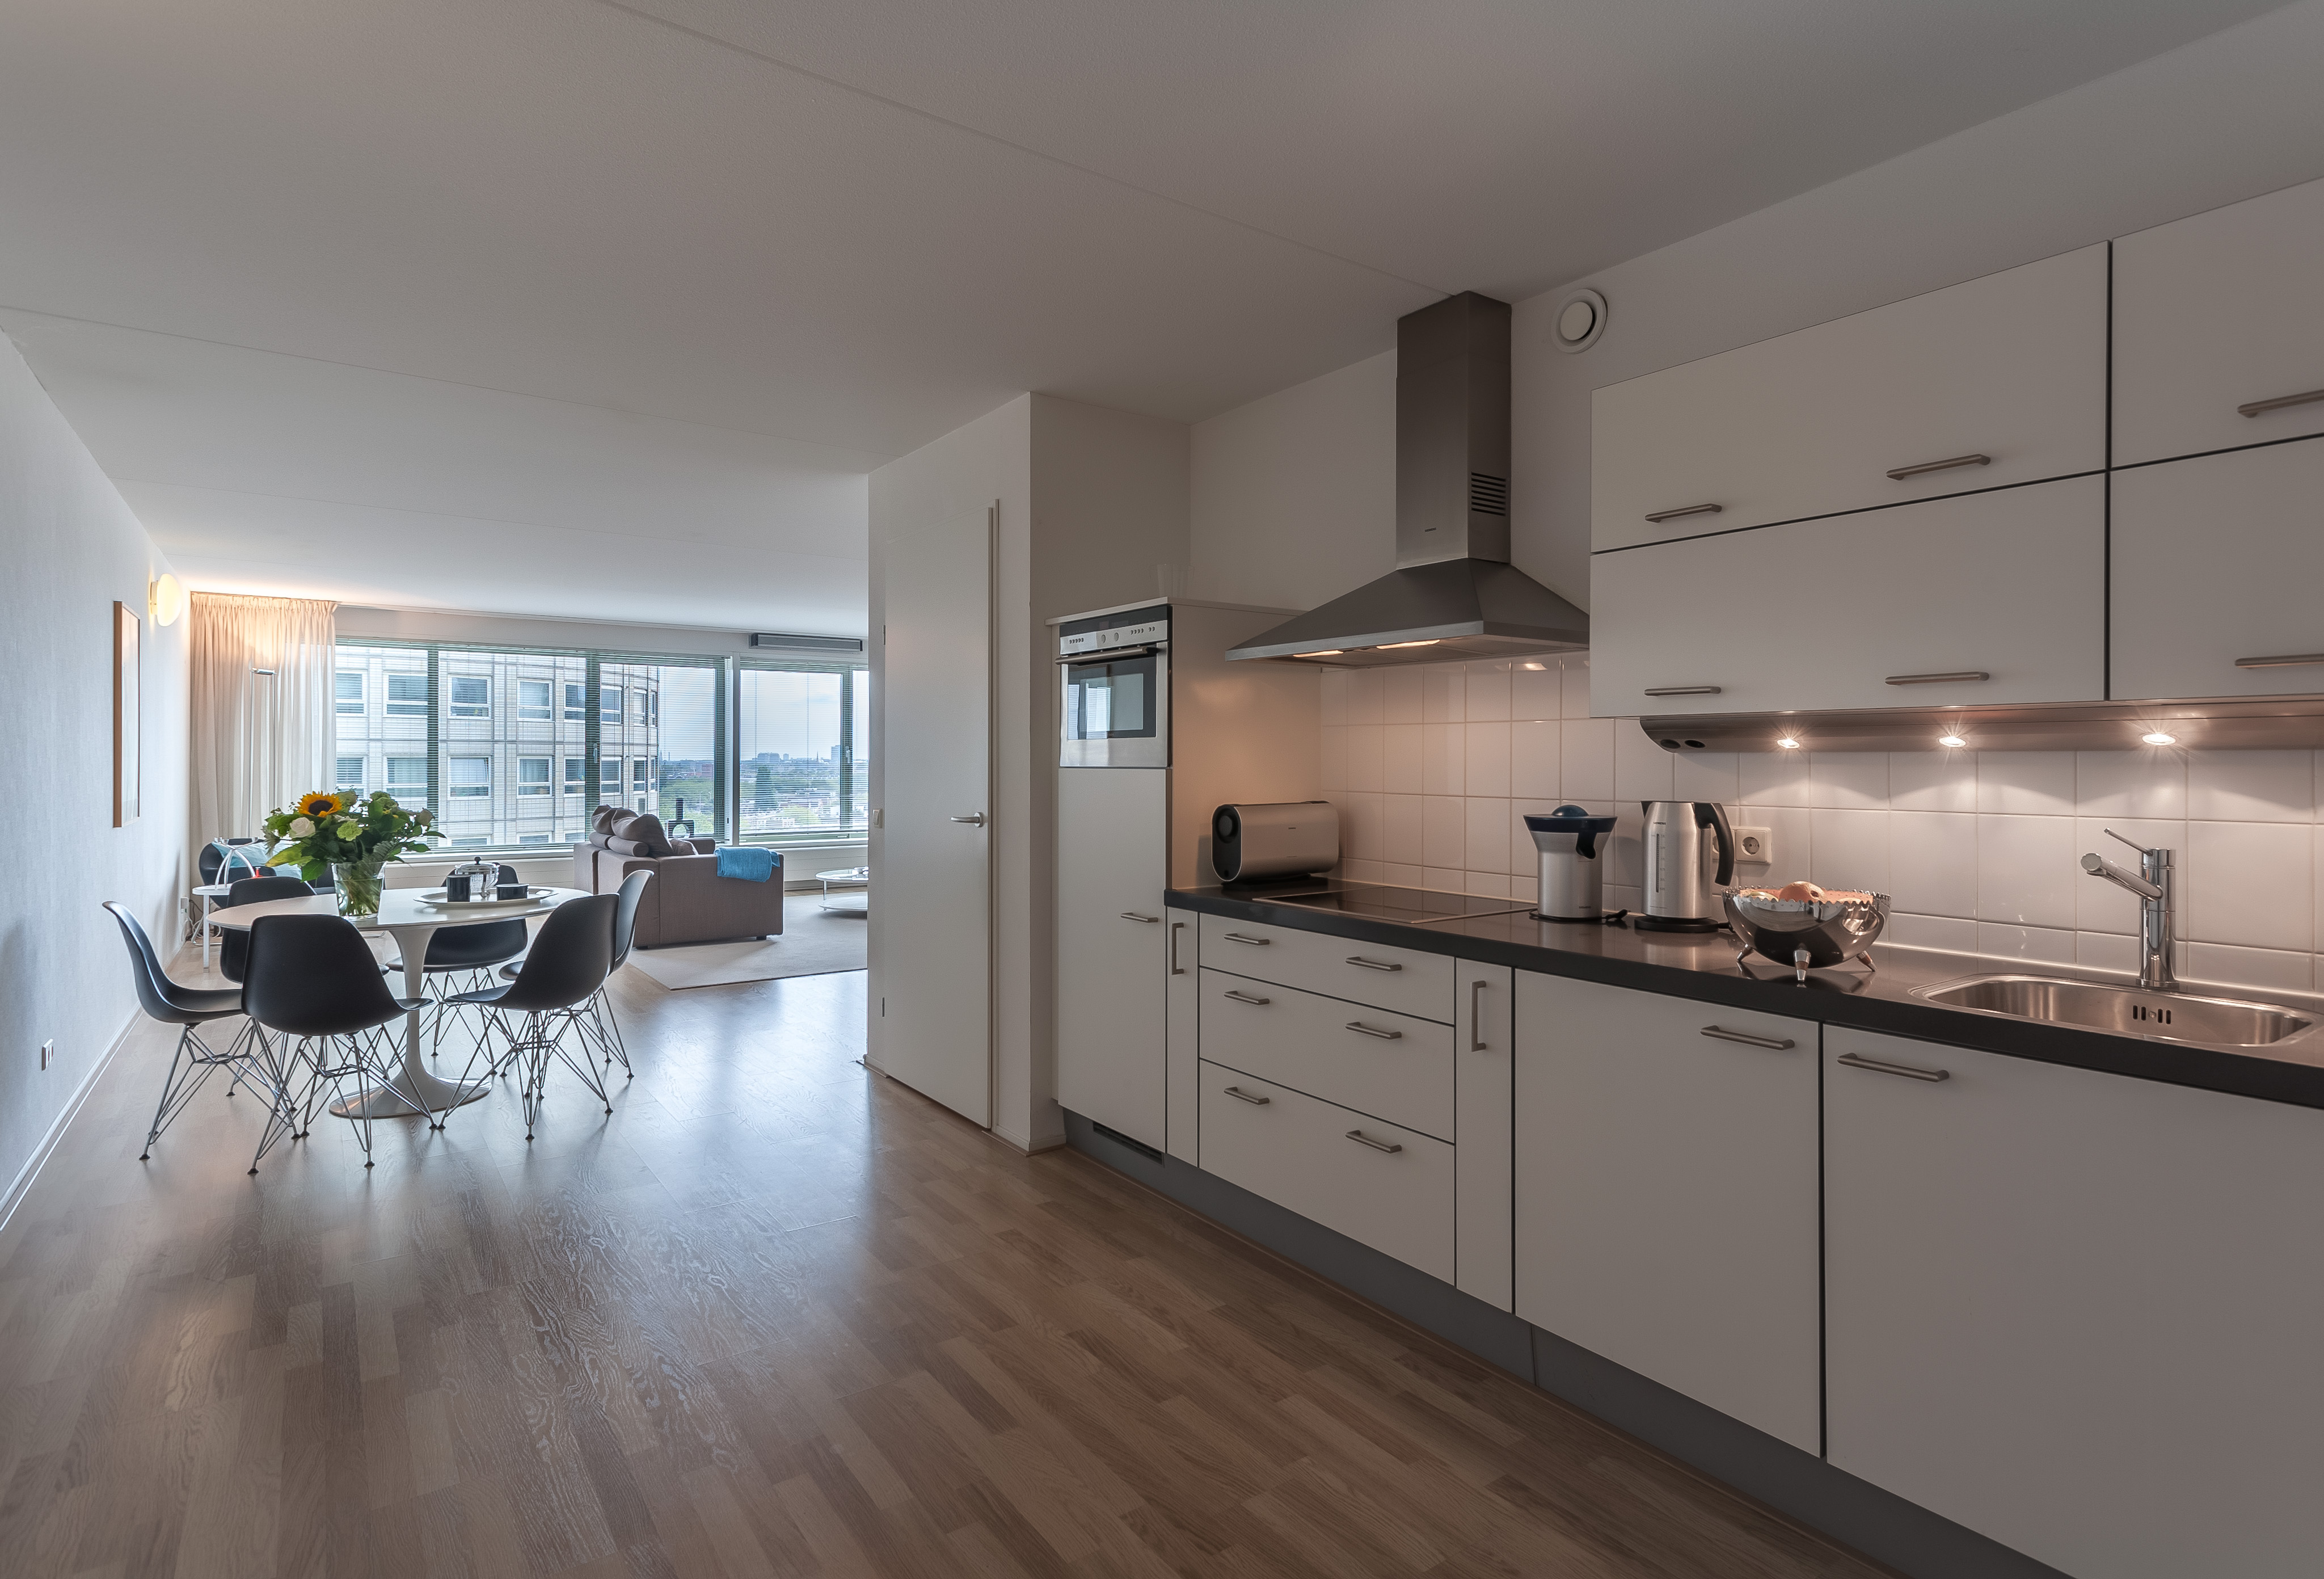 apartments for rent the-hague la fenetre kitchen